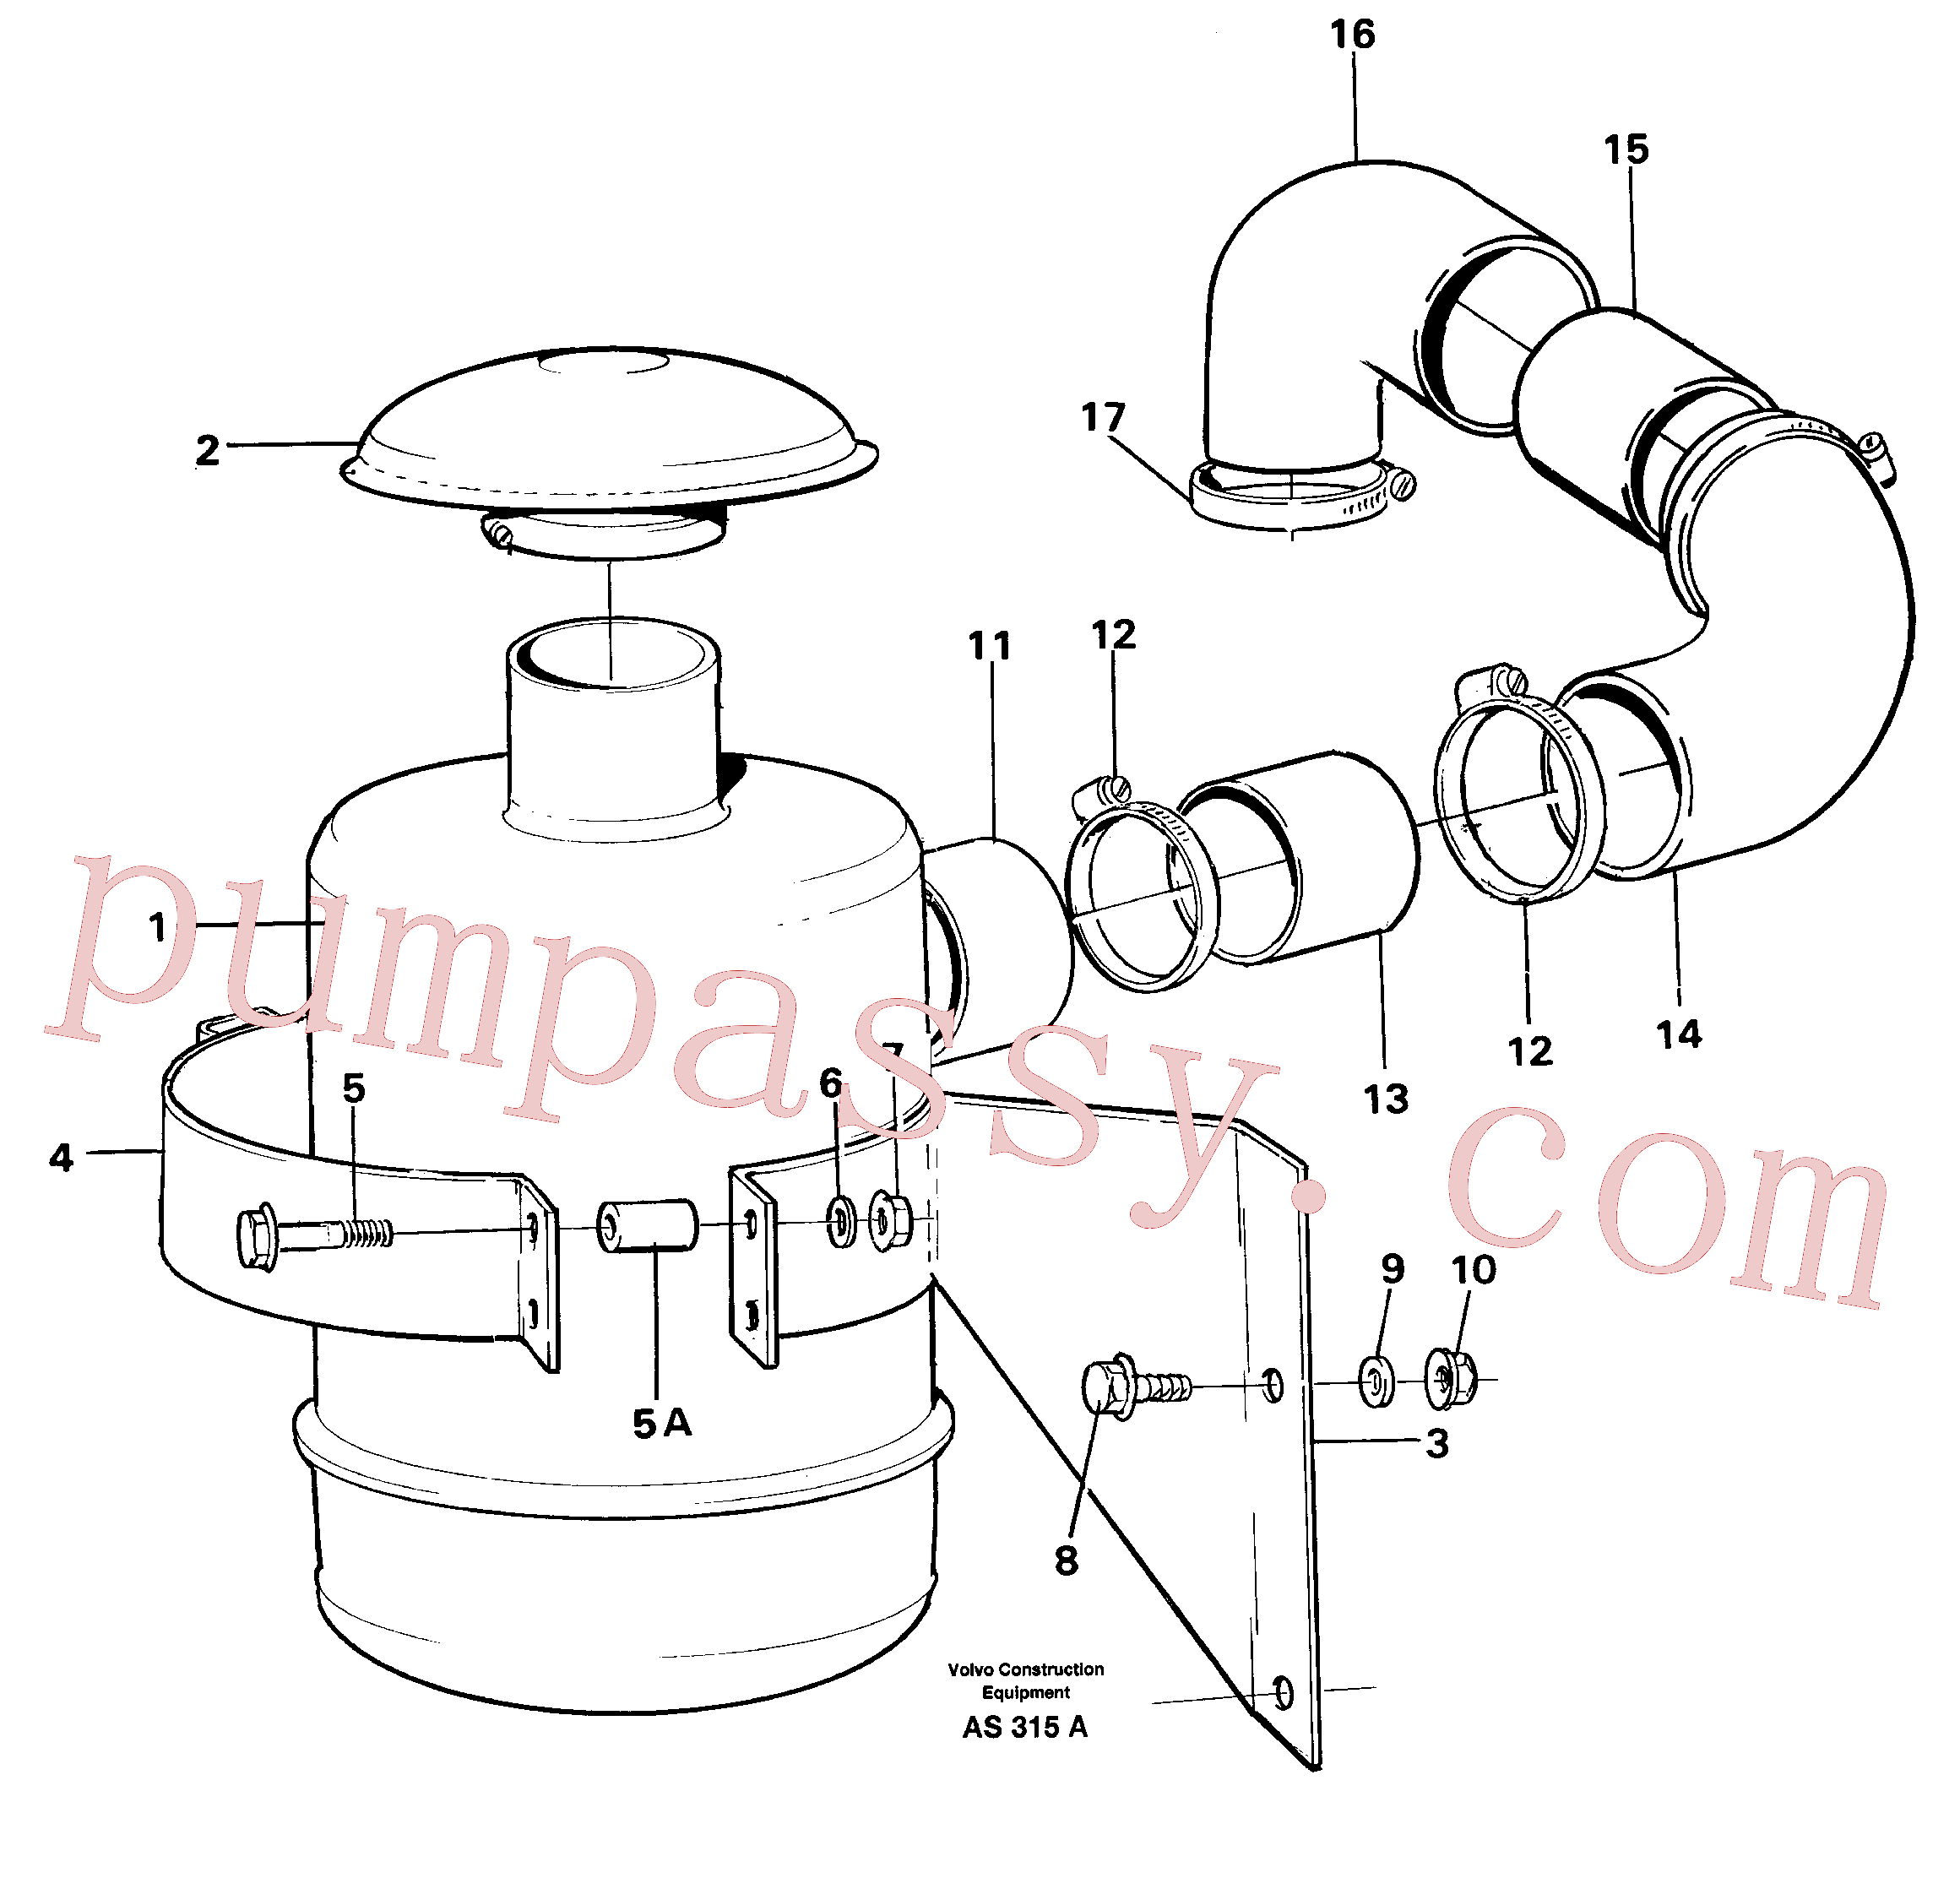 VOE13960143 for Volvo Oil bath filter(AS315A assembly)